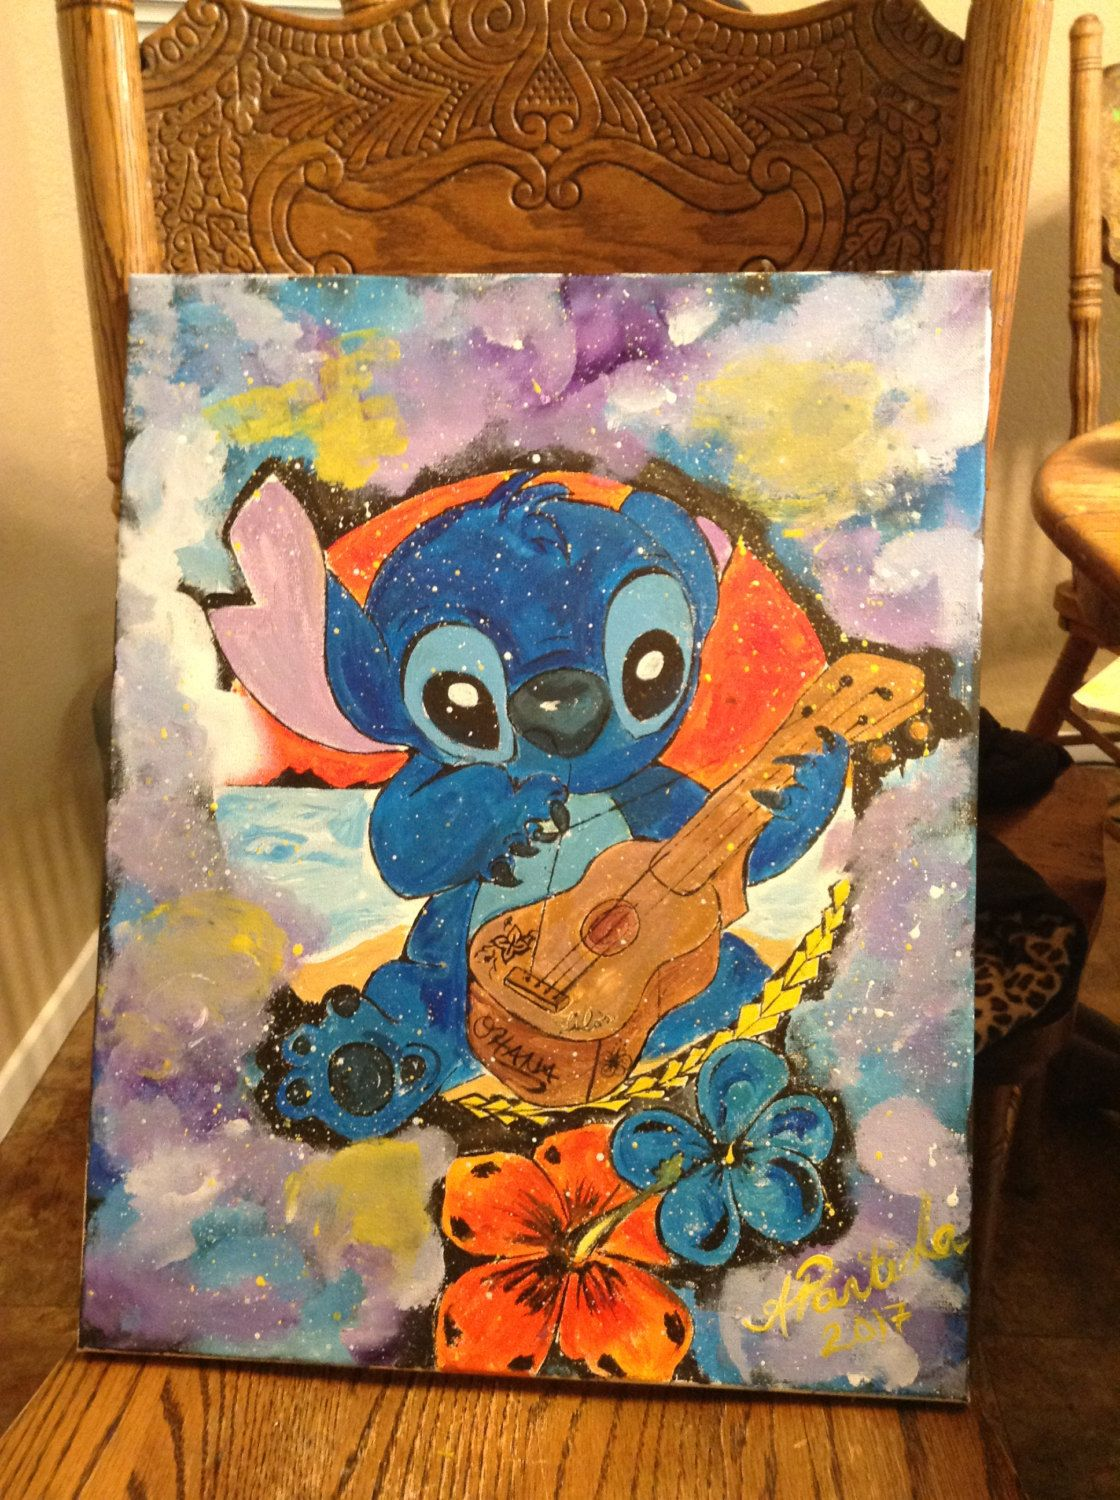 Stitch and lilos ukulele by BeyondFinds on Etsy